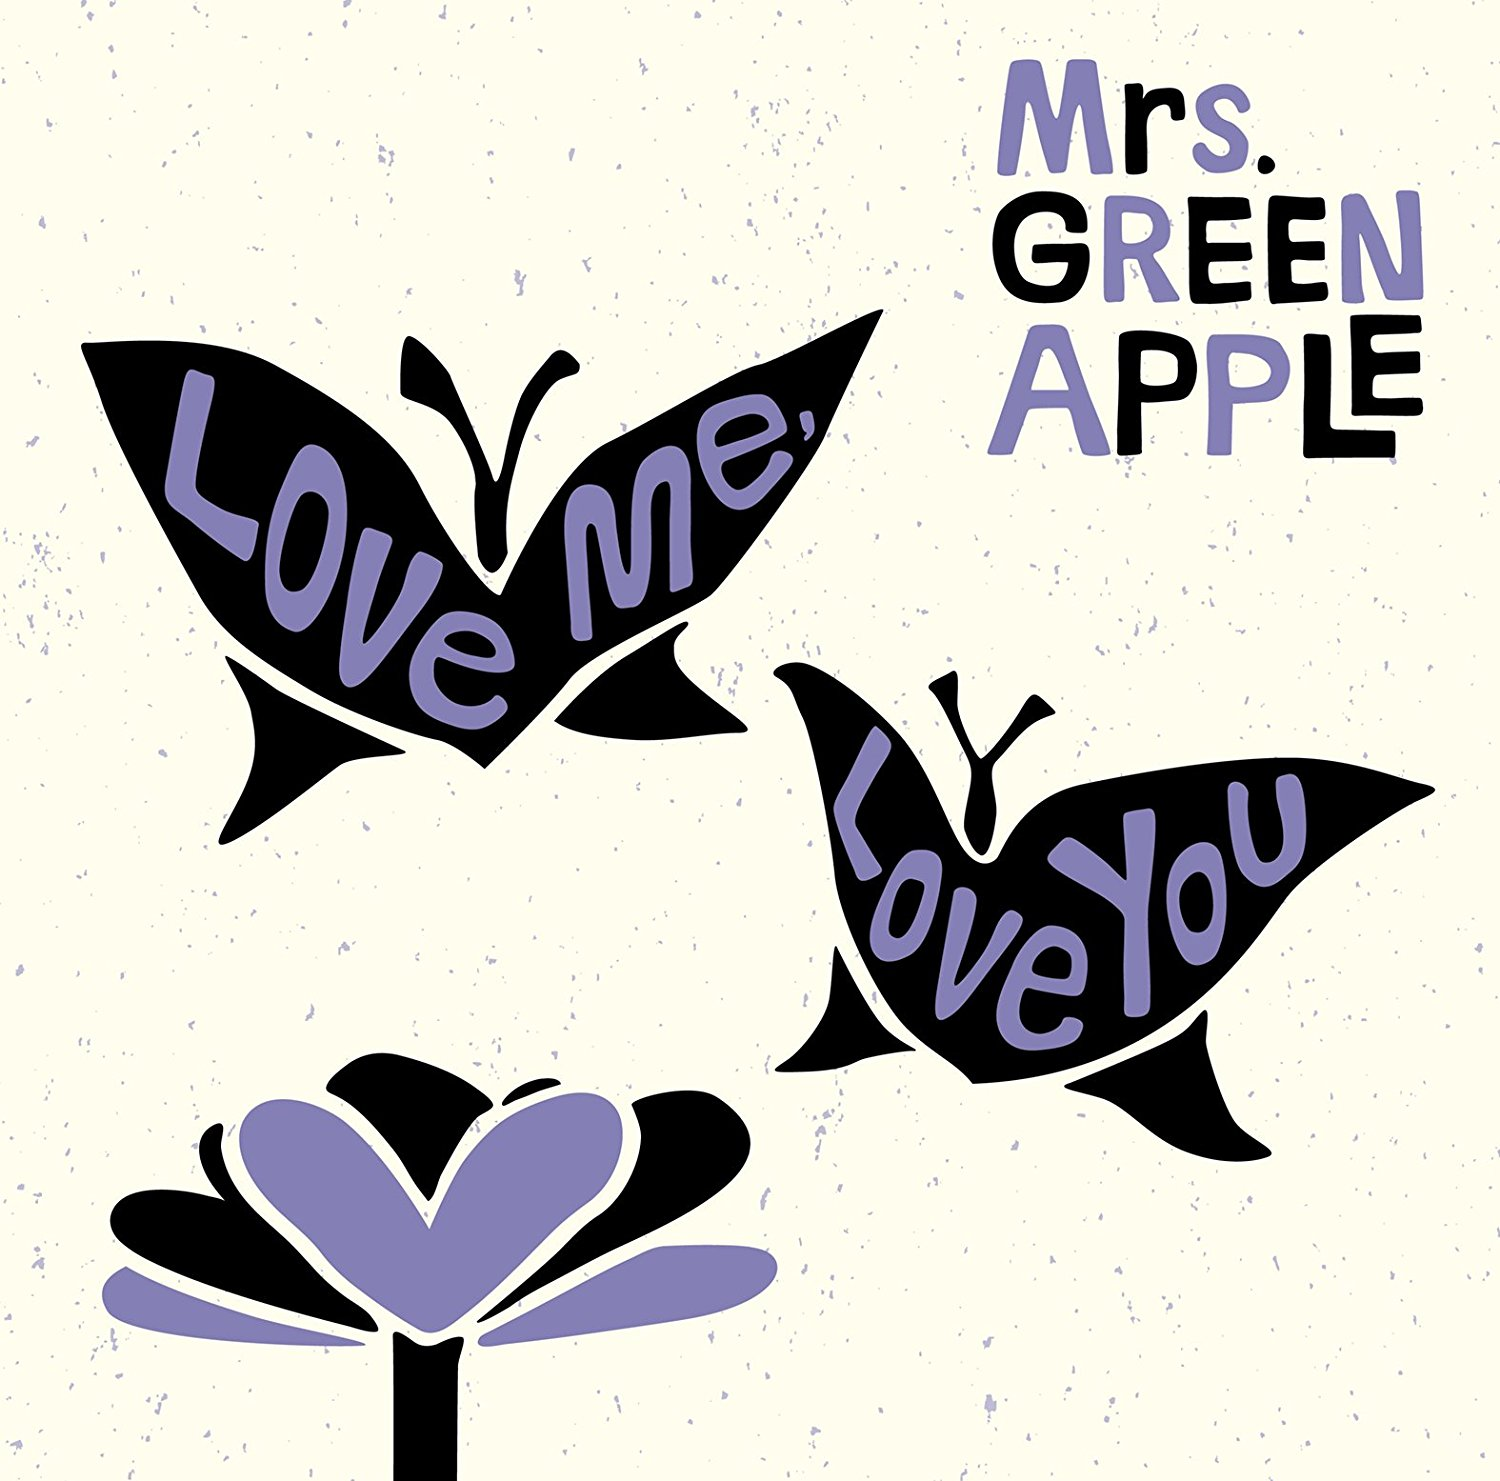 Mrs. GREEN APPLE – Love Me.Love You